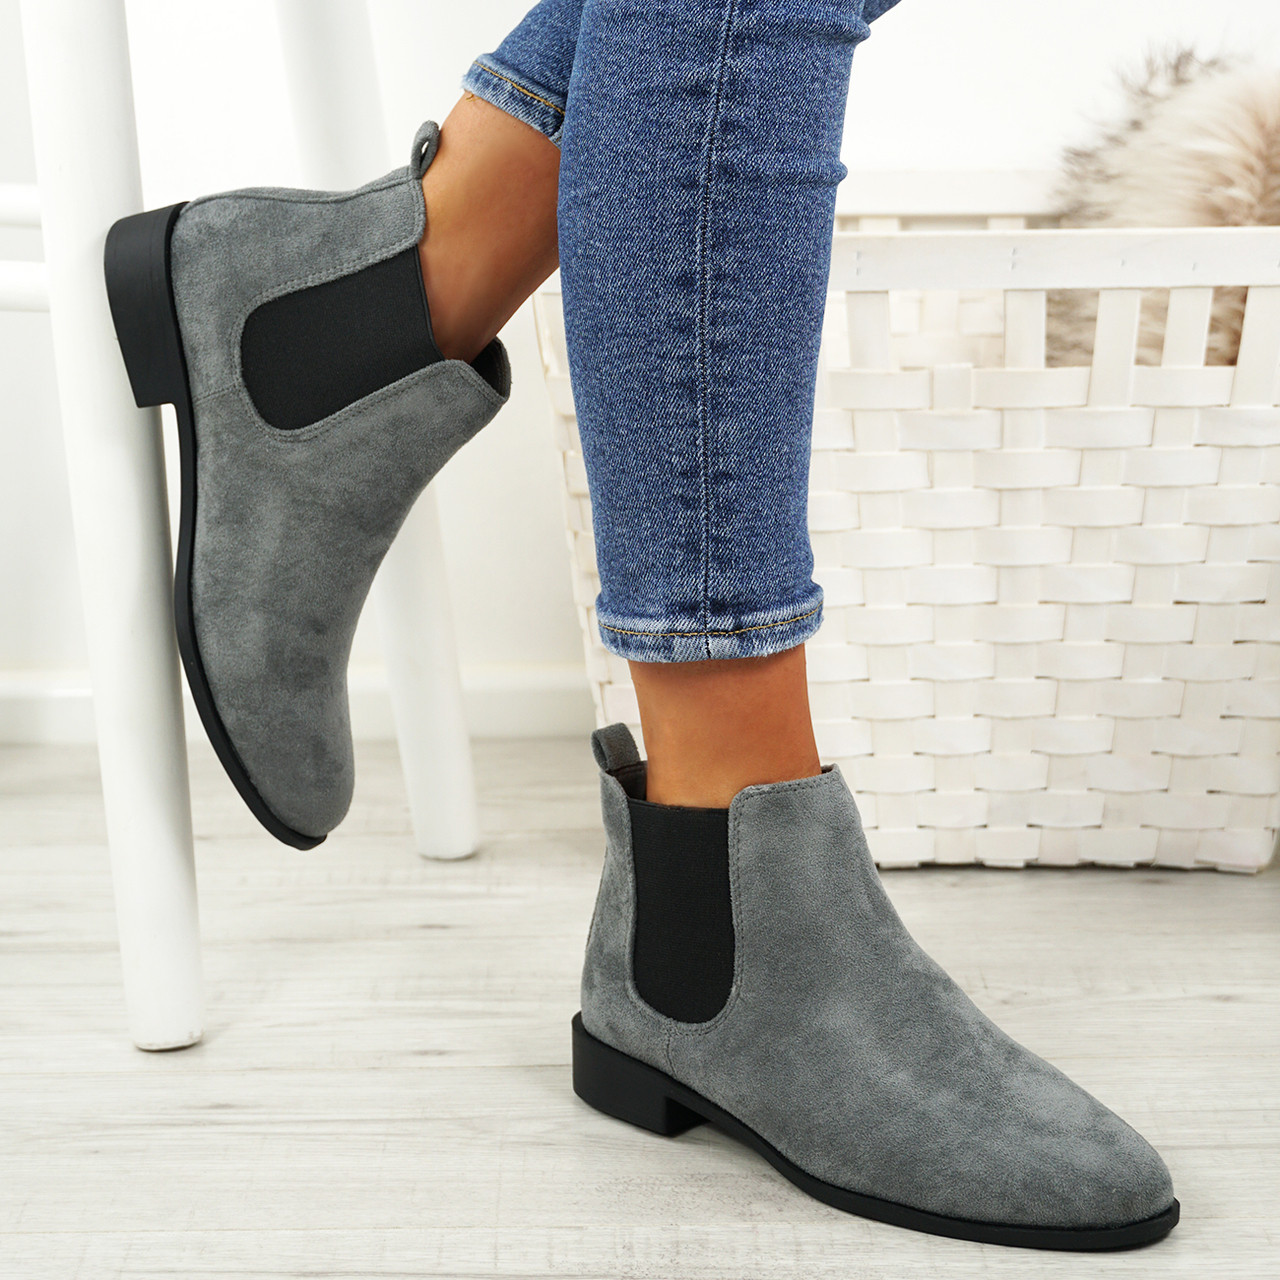 new appearance finest selection buy good Ladies Womens Slip On Chelsea Ankle Boots Low Heel Elastic Gusset ...